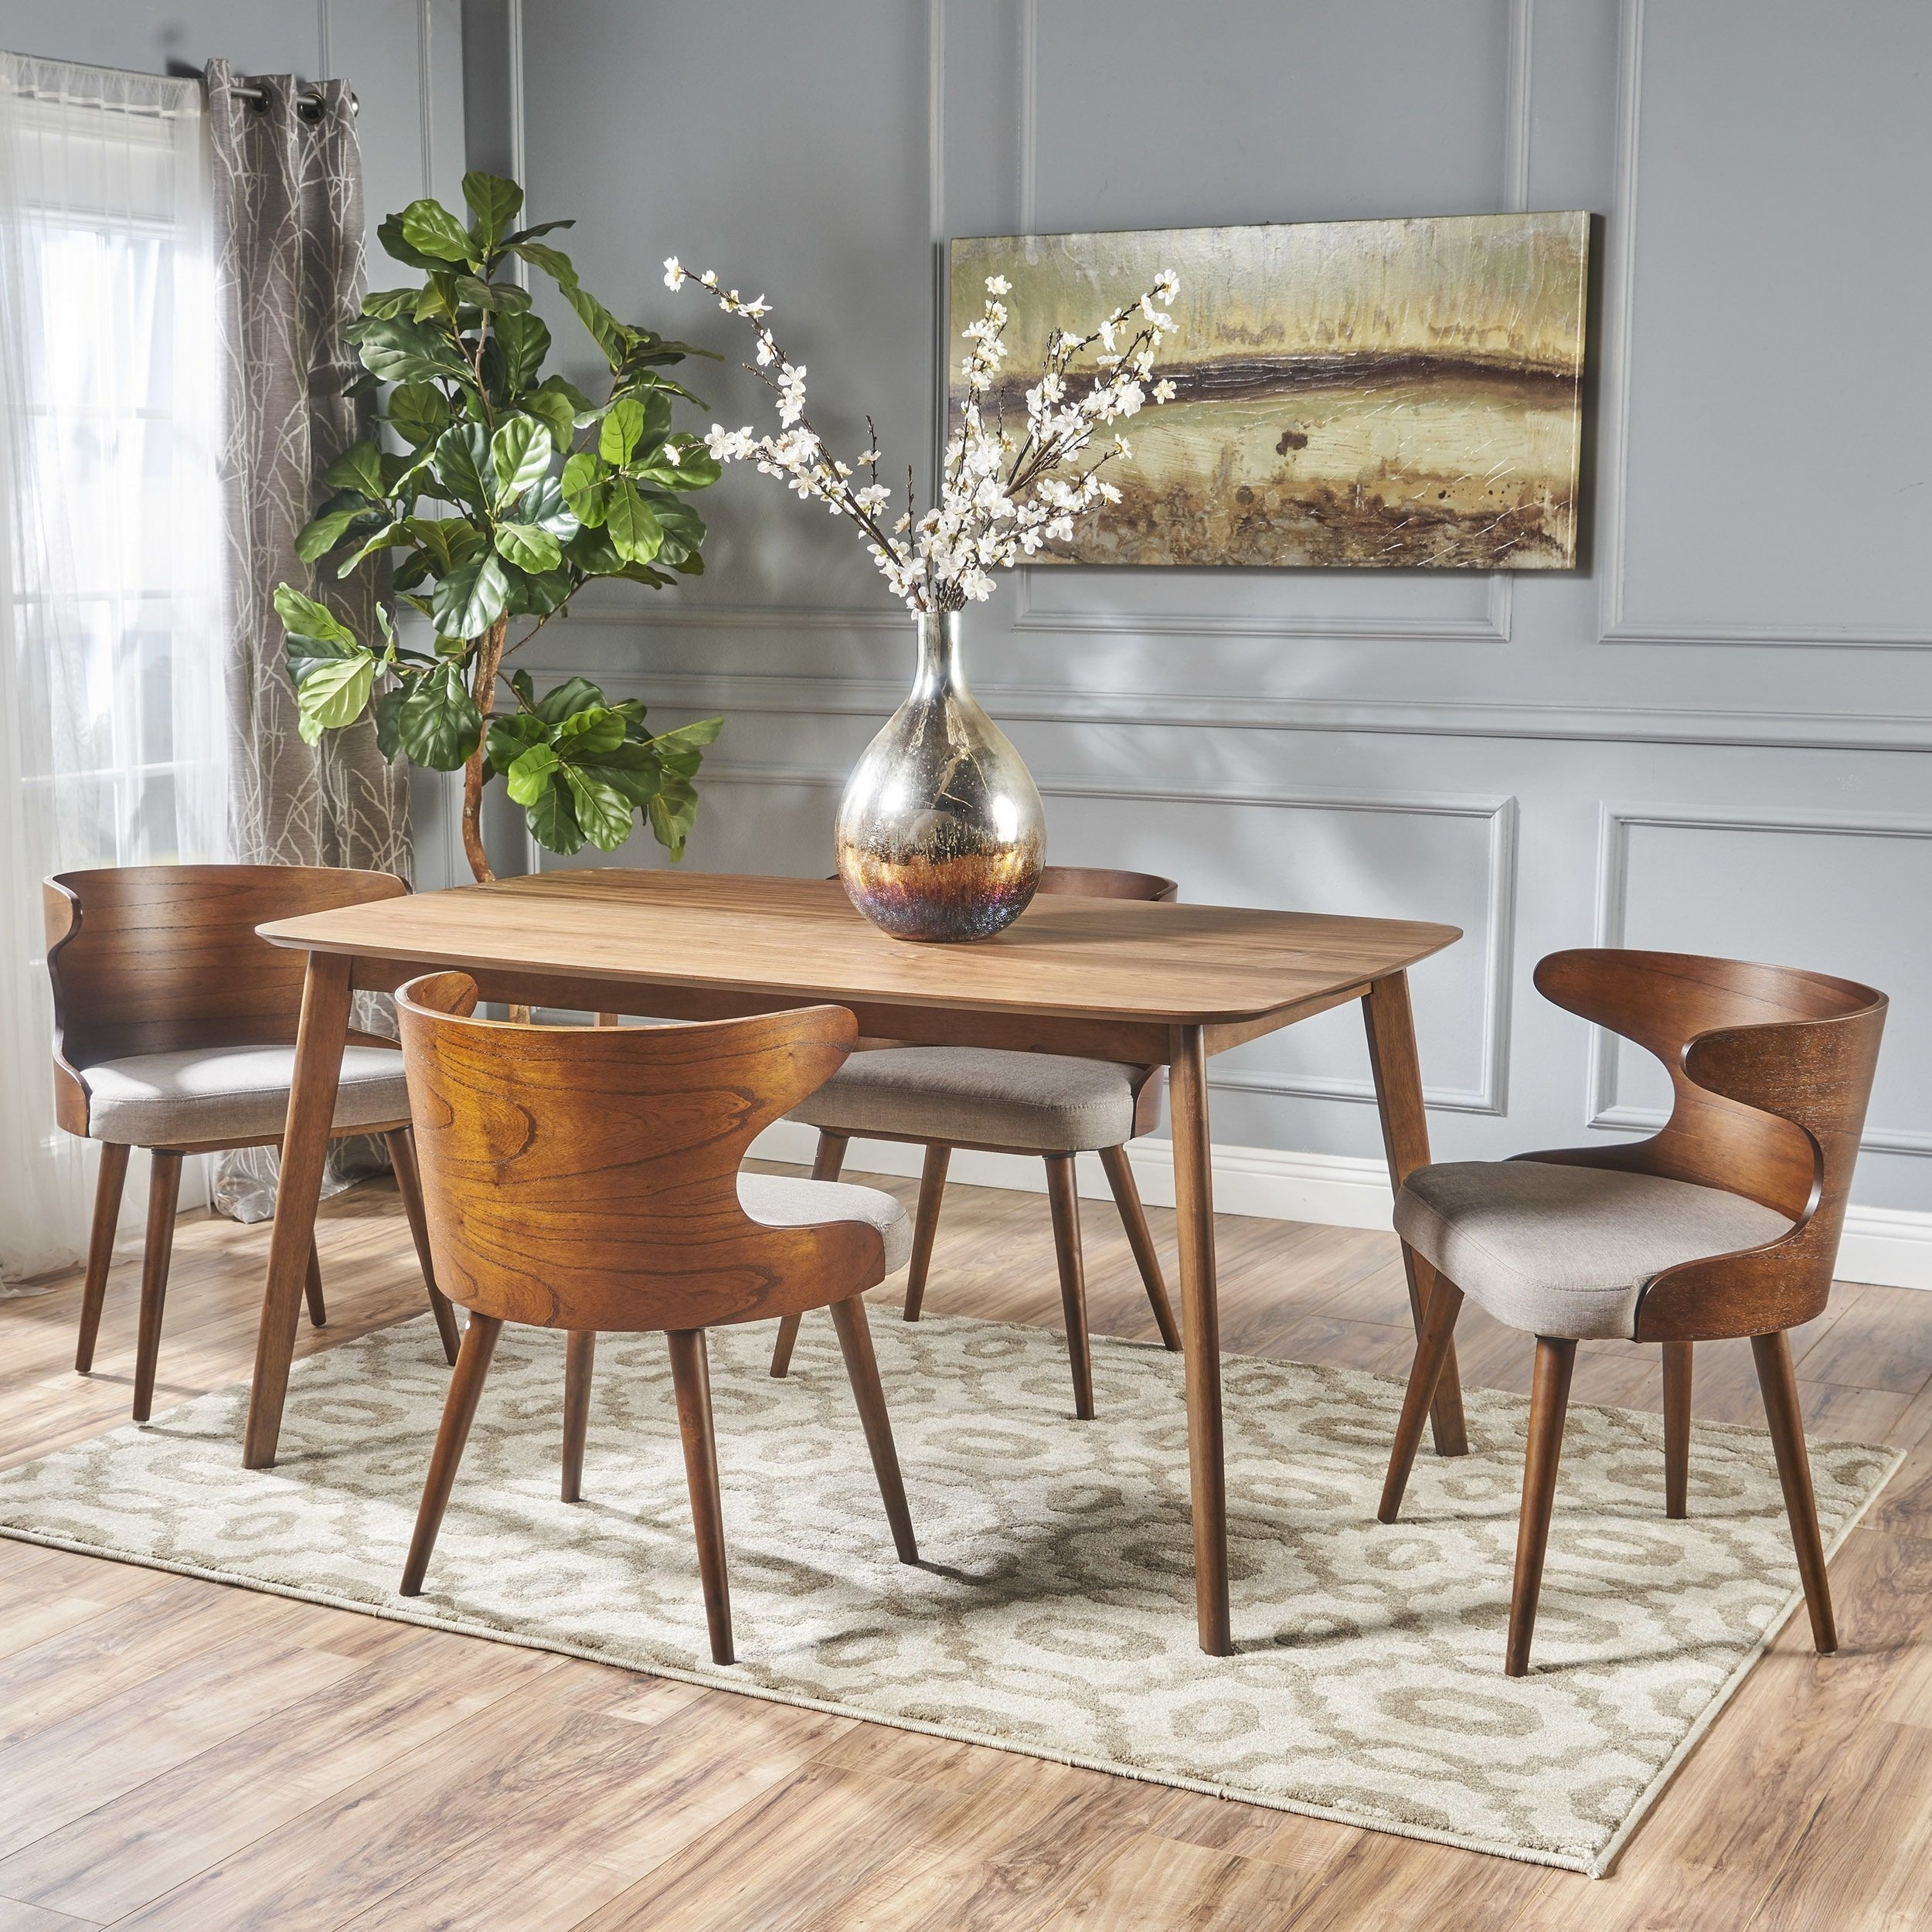 Briella Mid Century 5 Piece Rectangular Wood Dining Set Within Most Current Palazzo 6 Piece Rectangle Dining Sets With Joss Side Chairs (View 10 of 20)